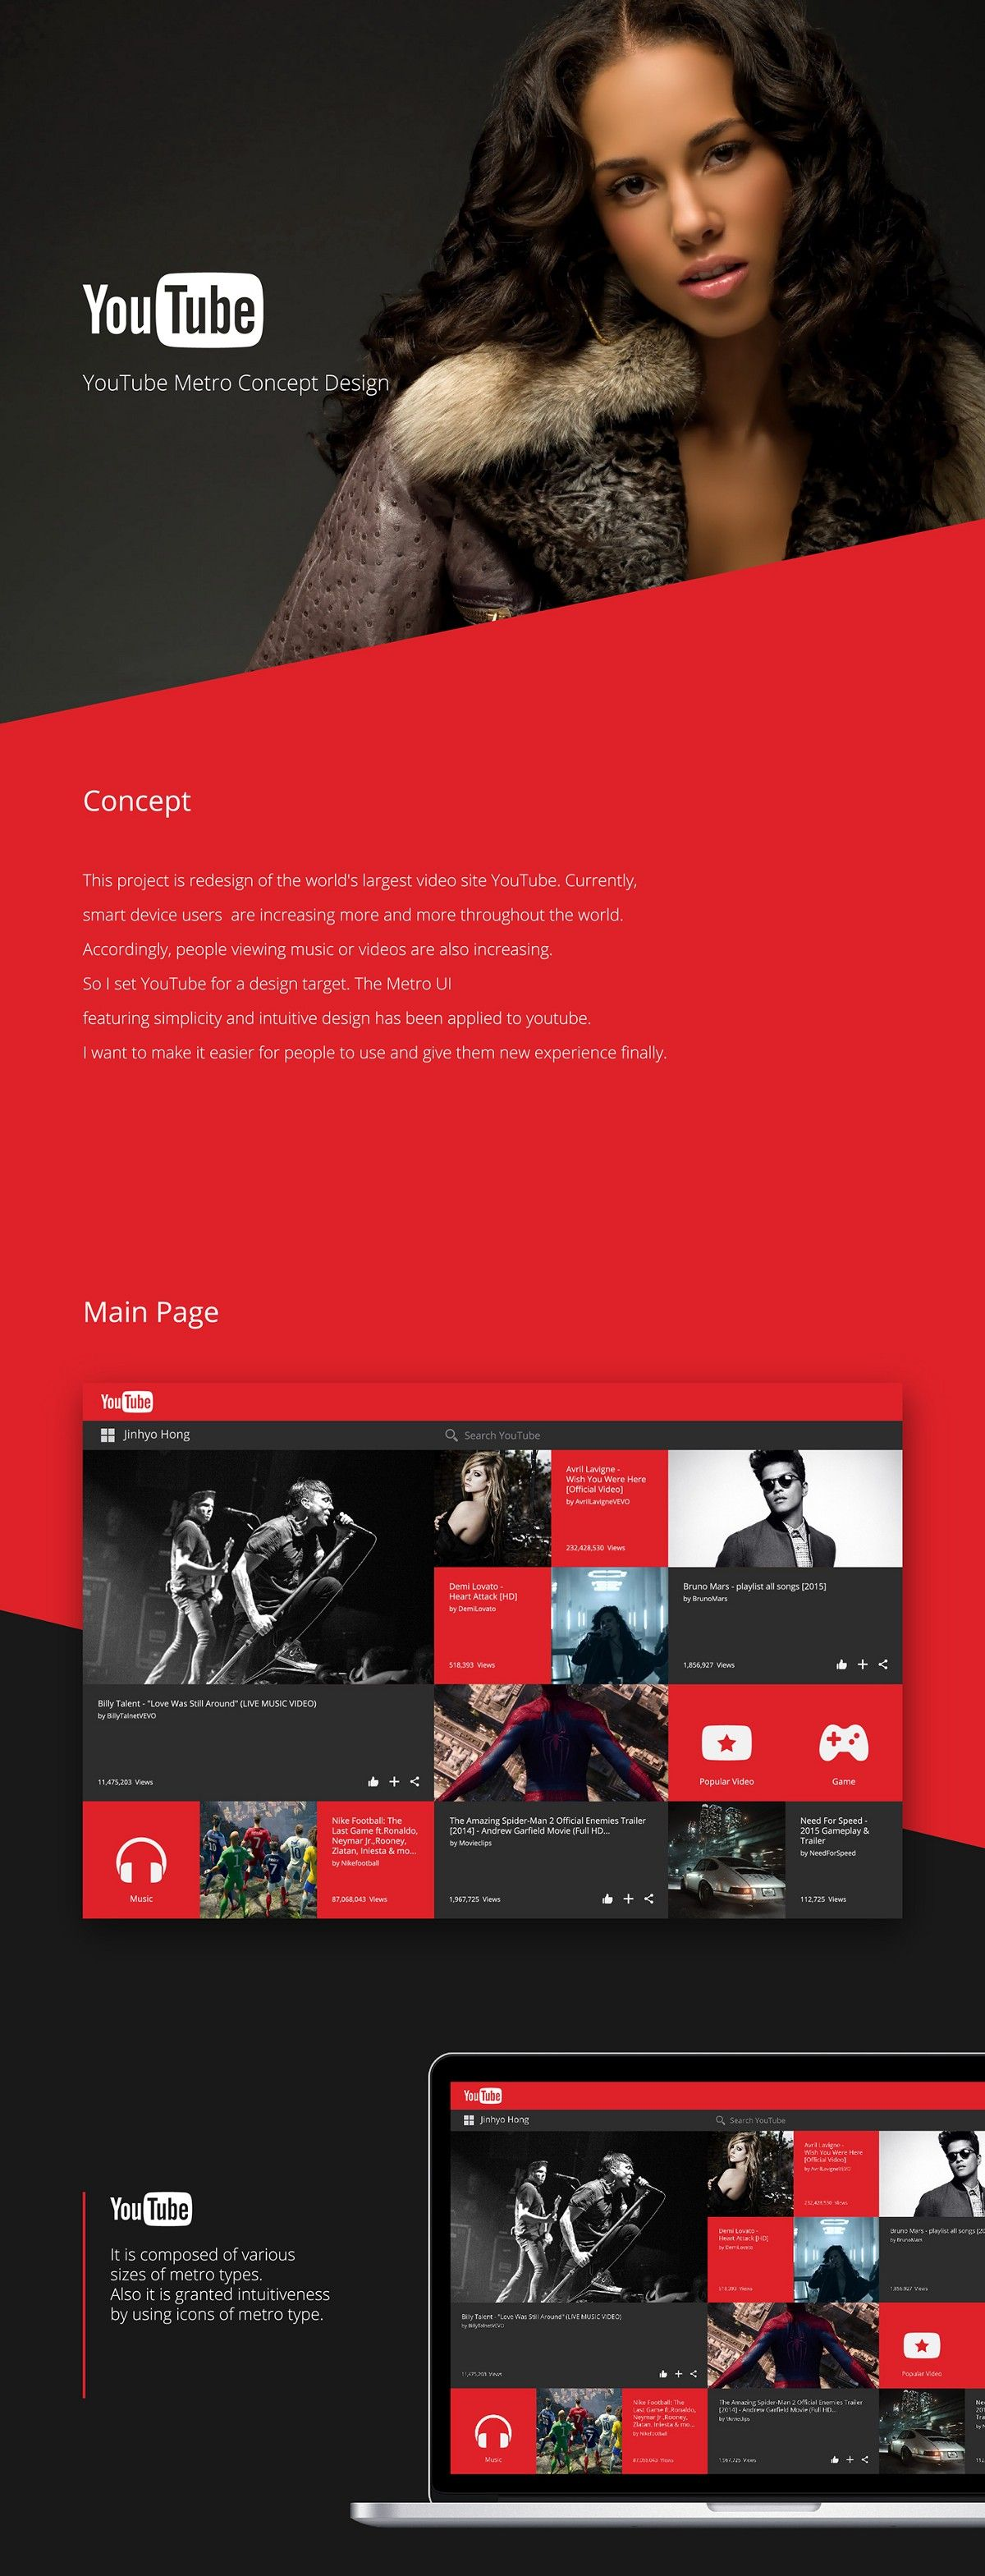 Redesign Concepts for Popular Websites #4